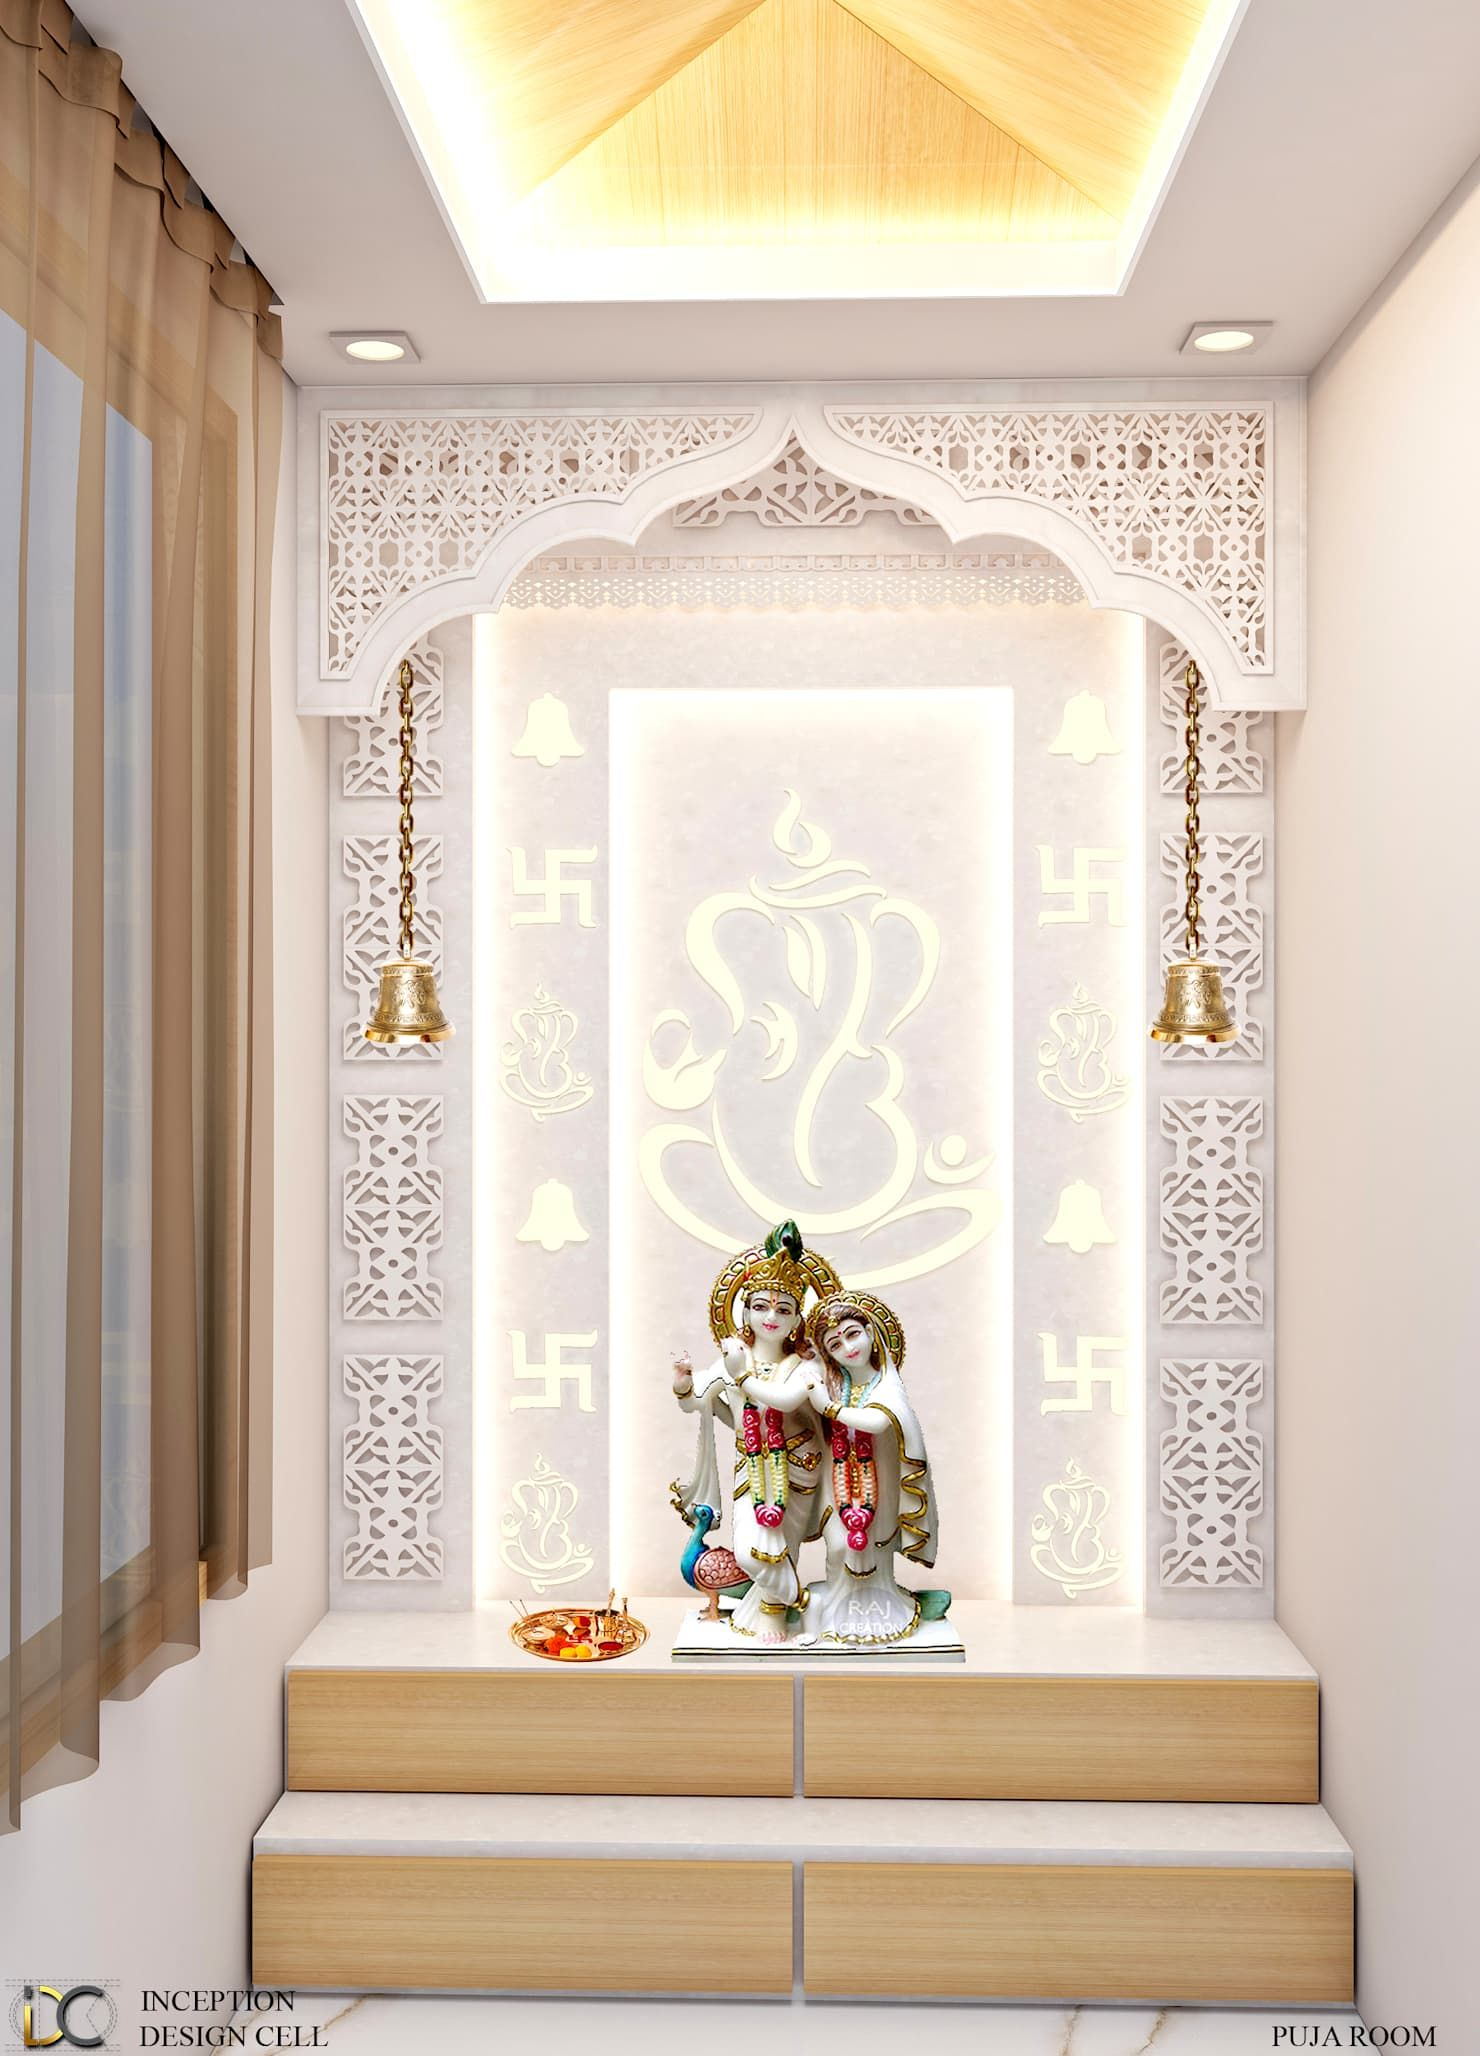 9 Traditional Pooja Room Door Designs In 2020: Puja Room Modern Walls & Floors By Inception Design Cell